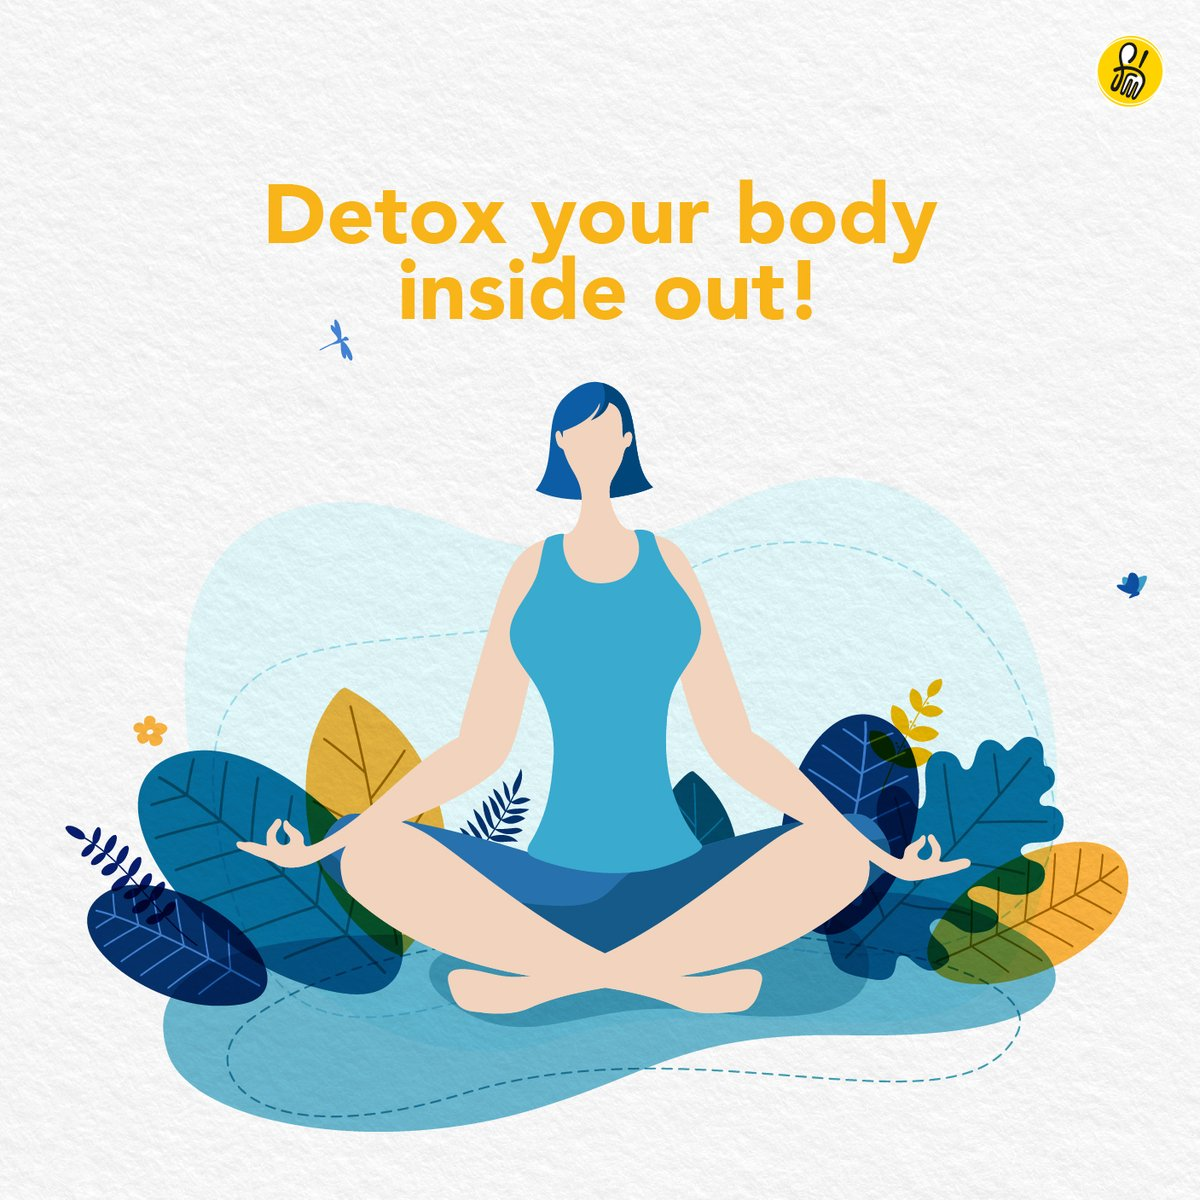 Your body deserves a cleanse once in a while. Try these yoga poses to naturally detox your body, whilst making yourself fit and healthy!   #FreshMenu #Yoga #FreshYoga #YogaPoses #YogaAsanas #Excercises #HealthyExercises #HealthyBody #HealthyLife #RealGoodFit https://t.co/FOBCybgwYK